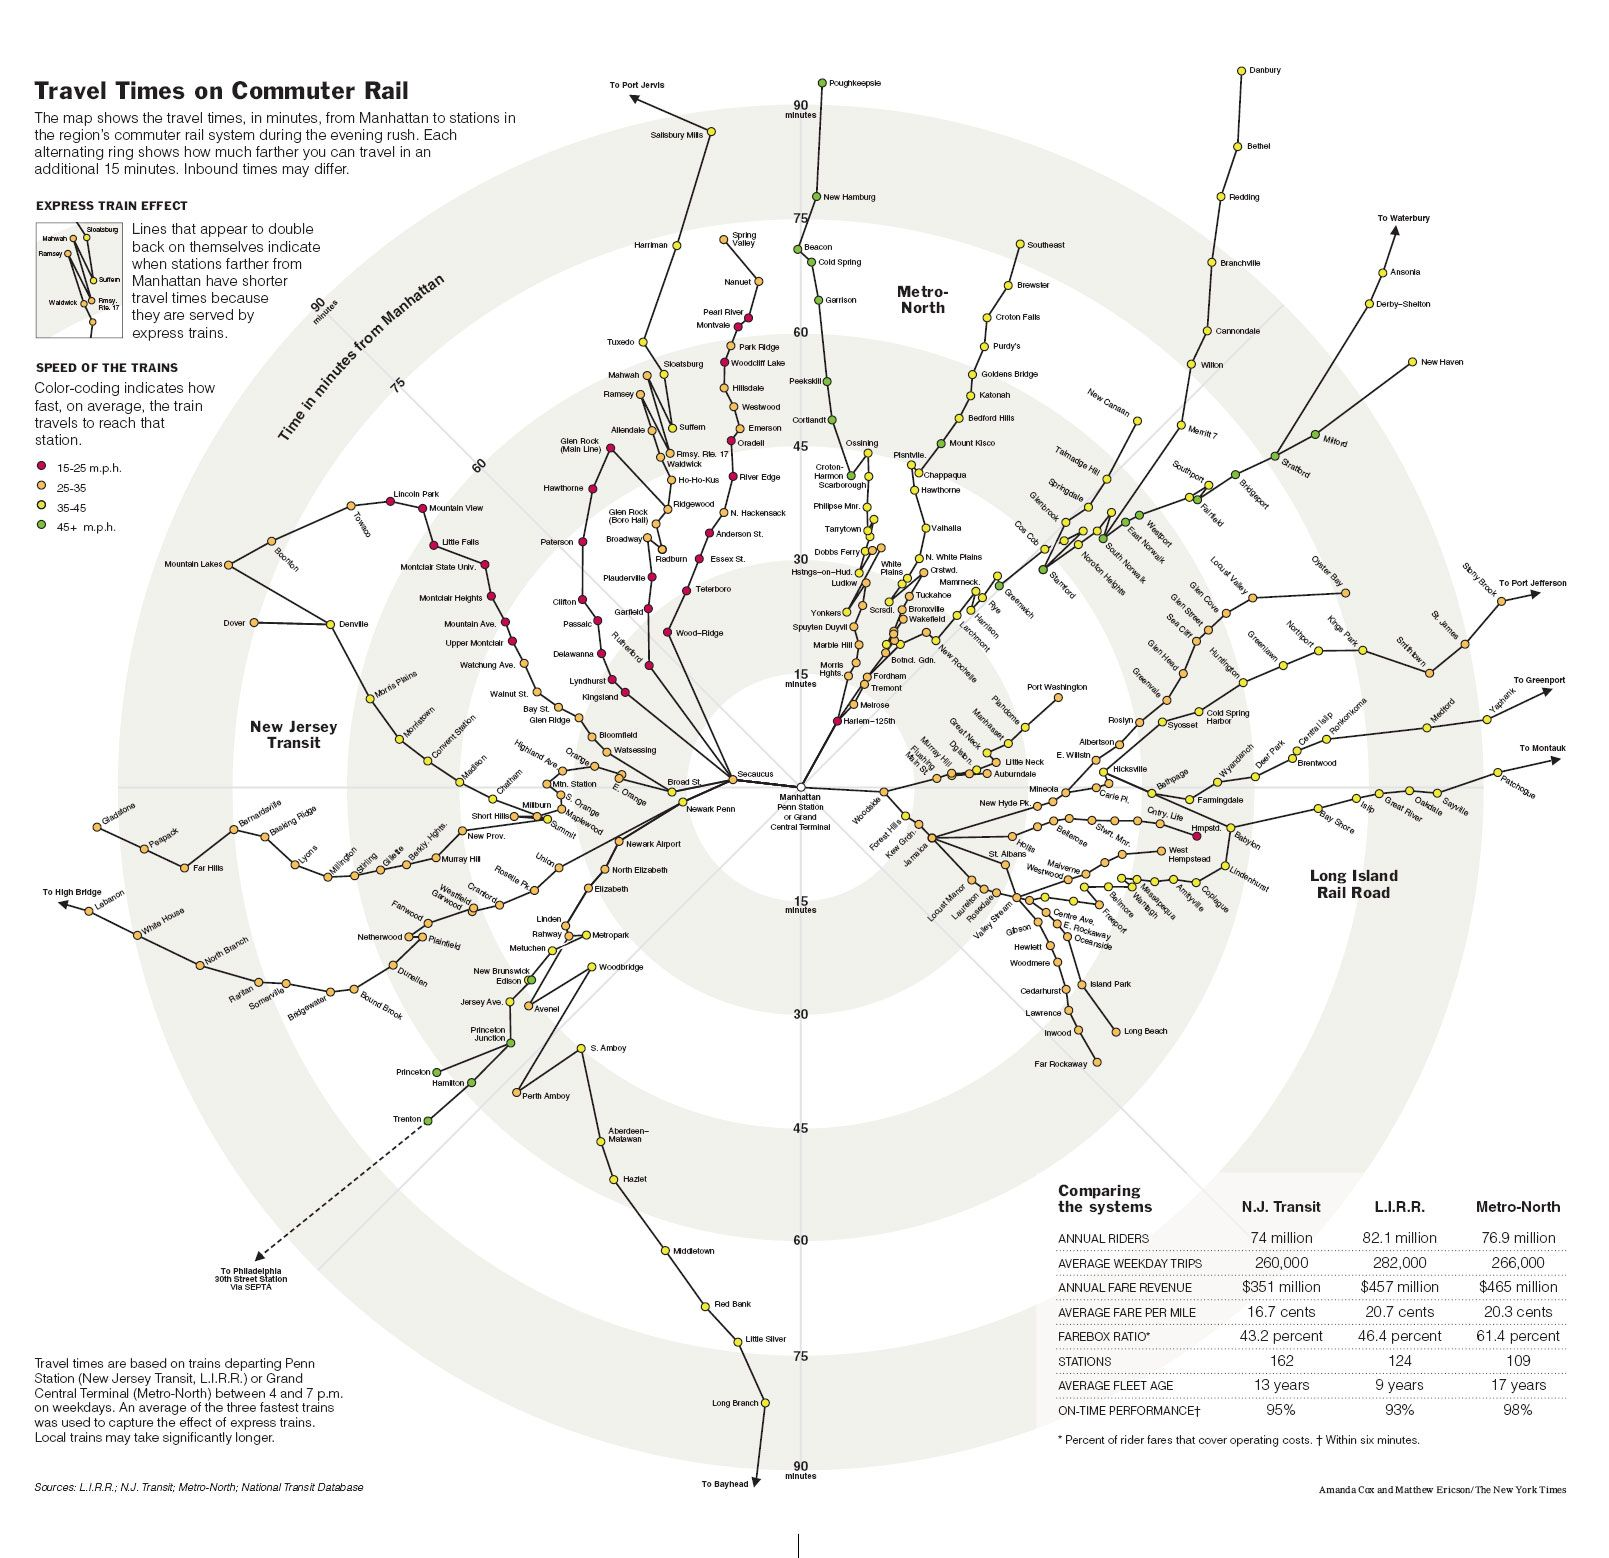 Nytimes S Travel Time Map Matthew Ericson And Amanda Cox